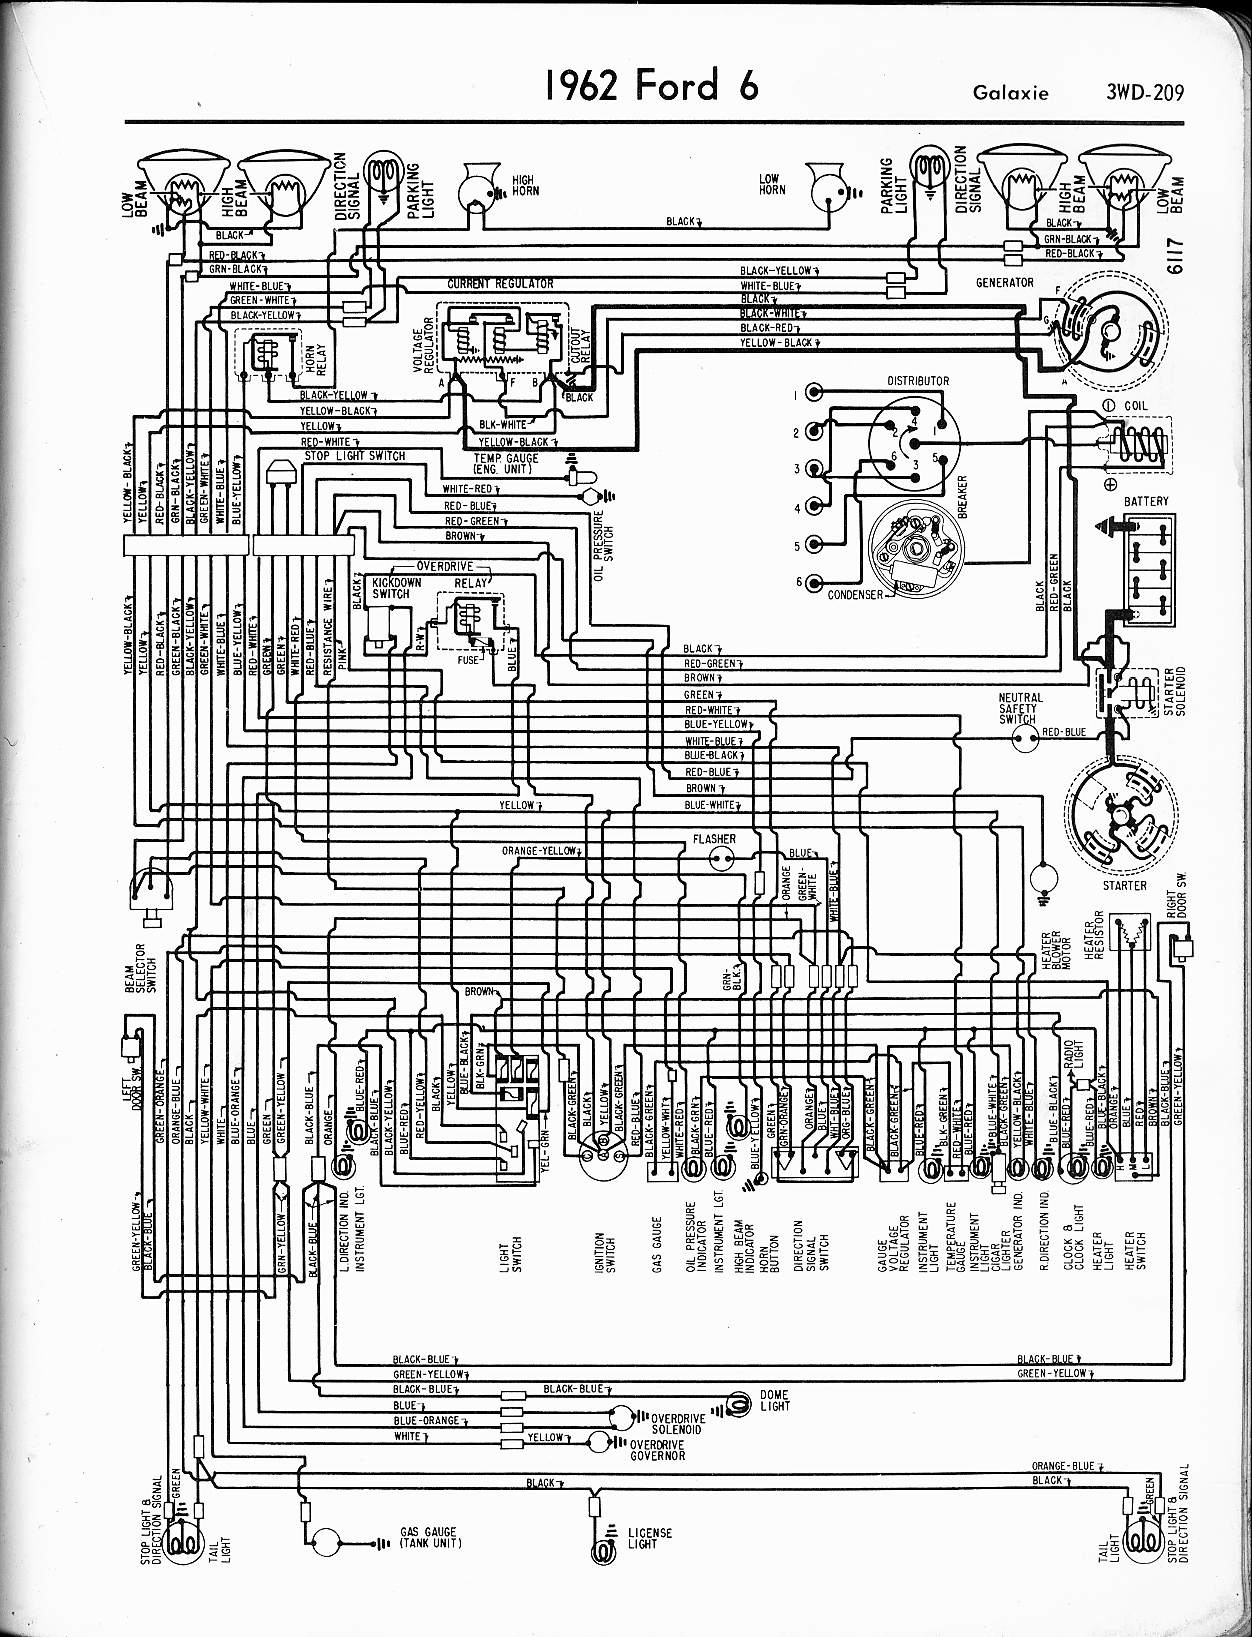 57 65 Ford Wiring Diagrams Instrument Cluster Diagram Click To Enlarge 1962 6 Cyl Galaxie